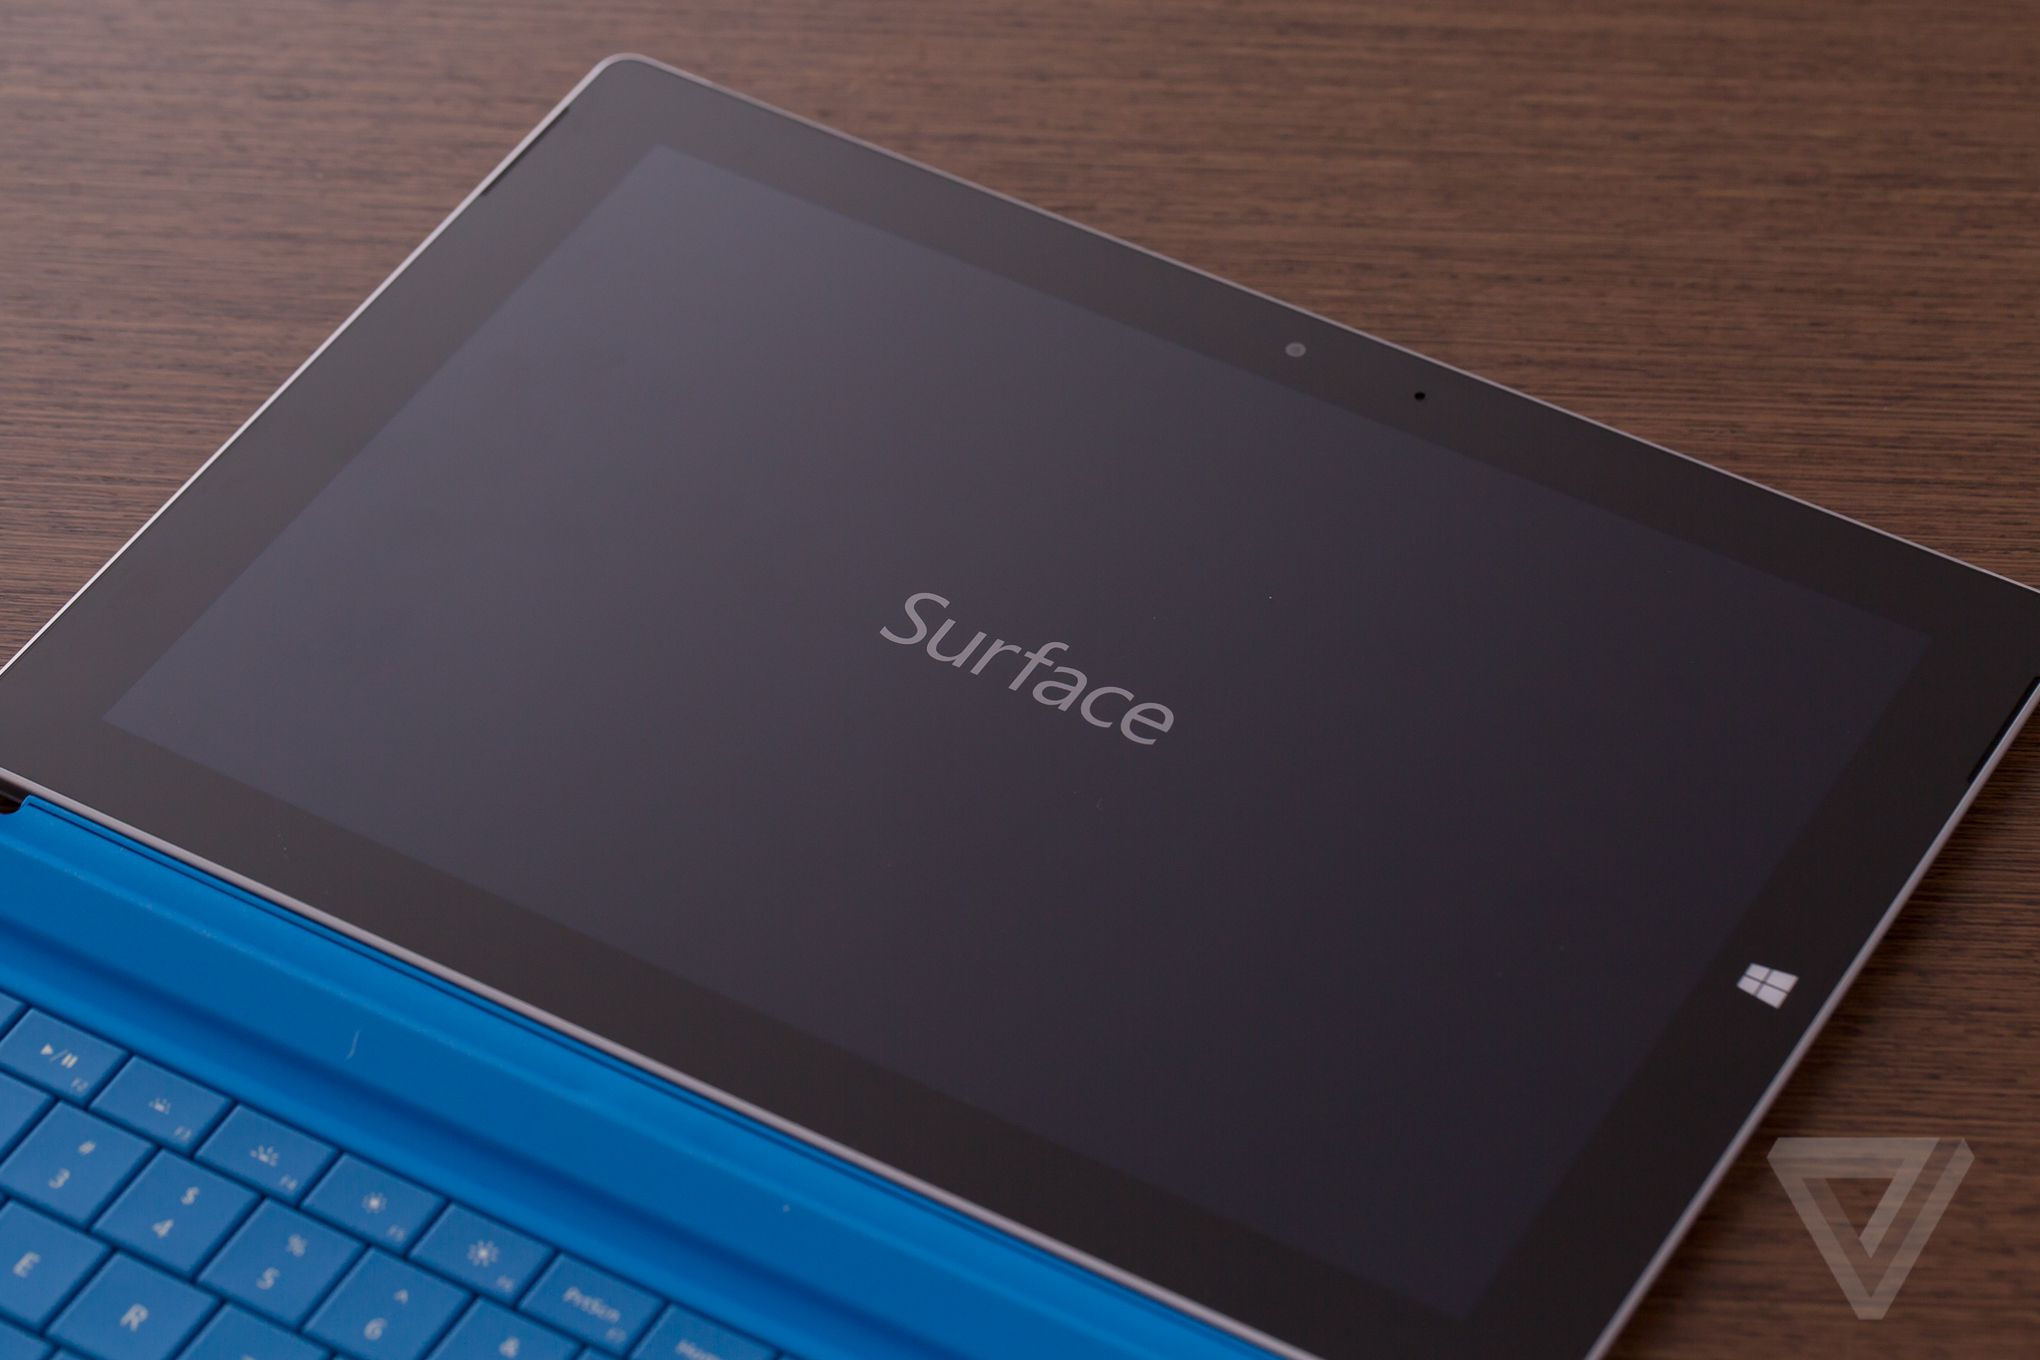 At Its Core, The Surface 3 Is A Shrunkendown Version Of The Surface Pro 3  That's Cheaper And Less Powerful For Many, The $499 Price Is Attractive,